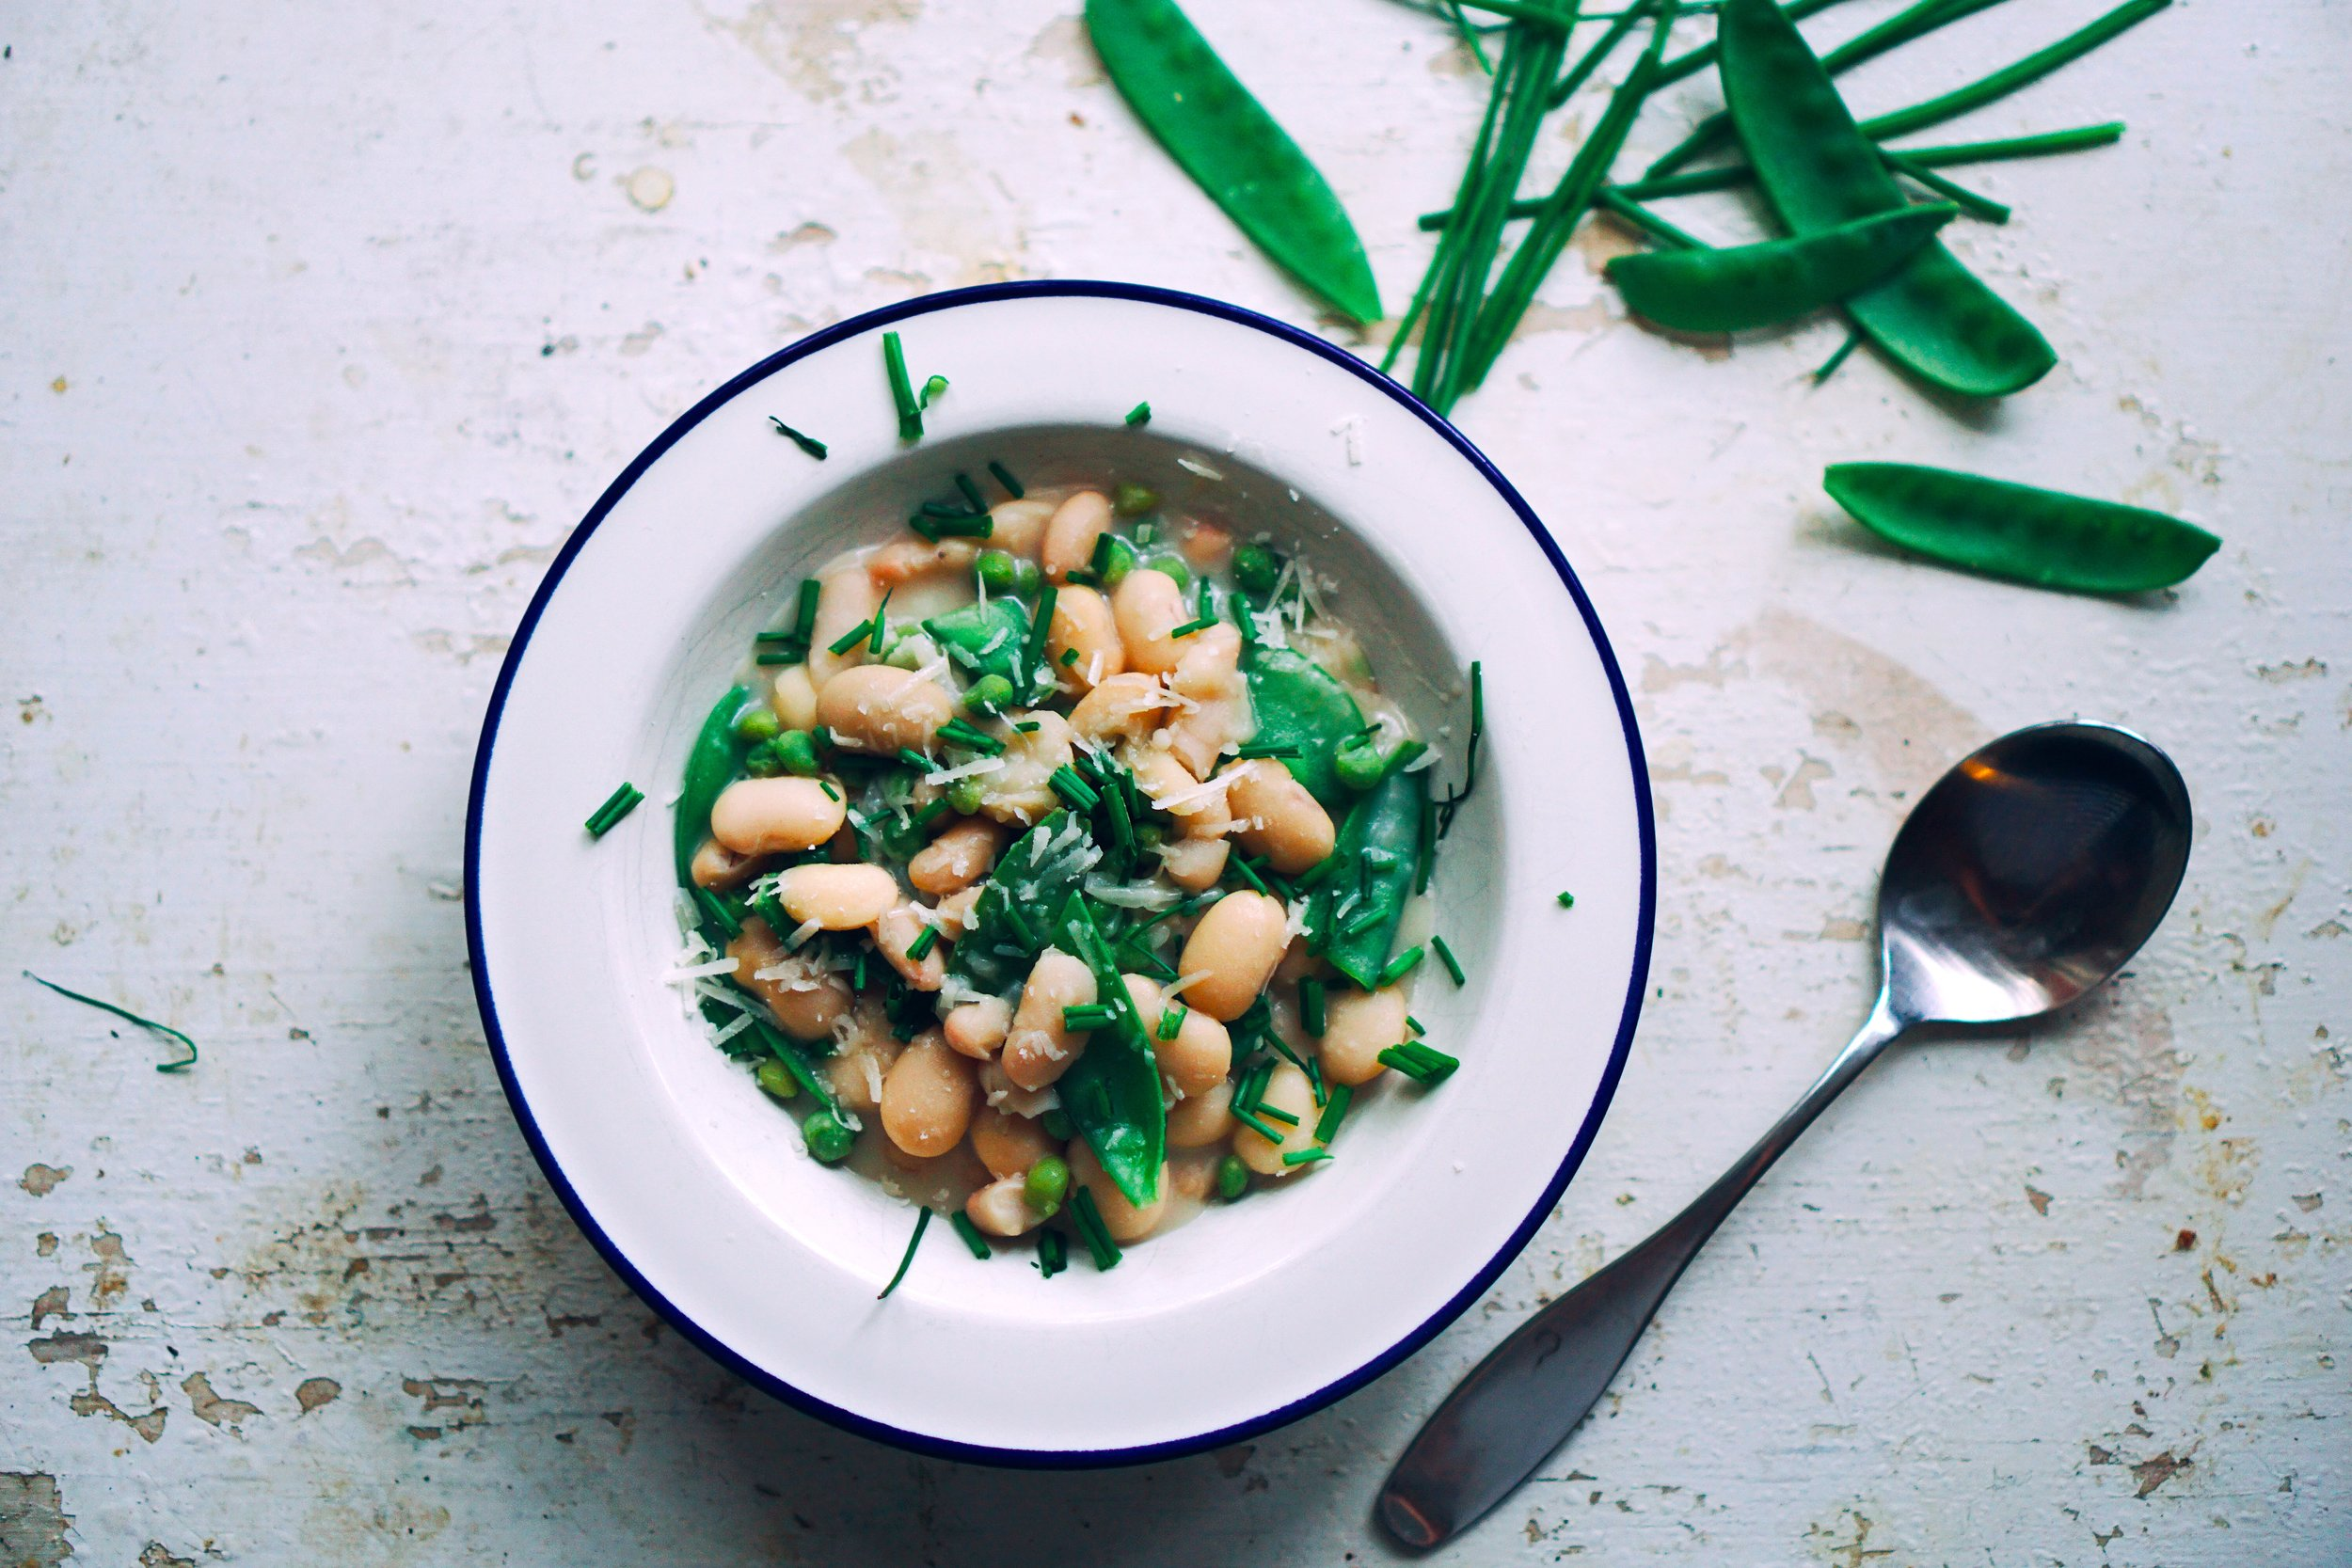 Bean risotto, the fastest food in the wild west